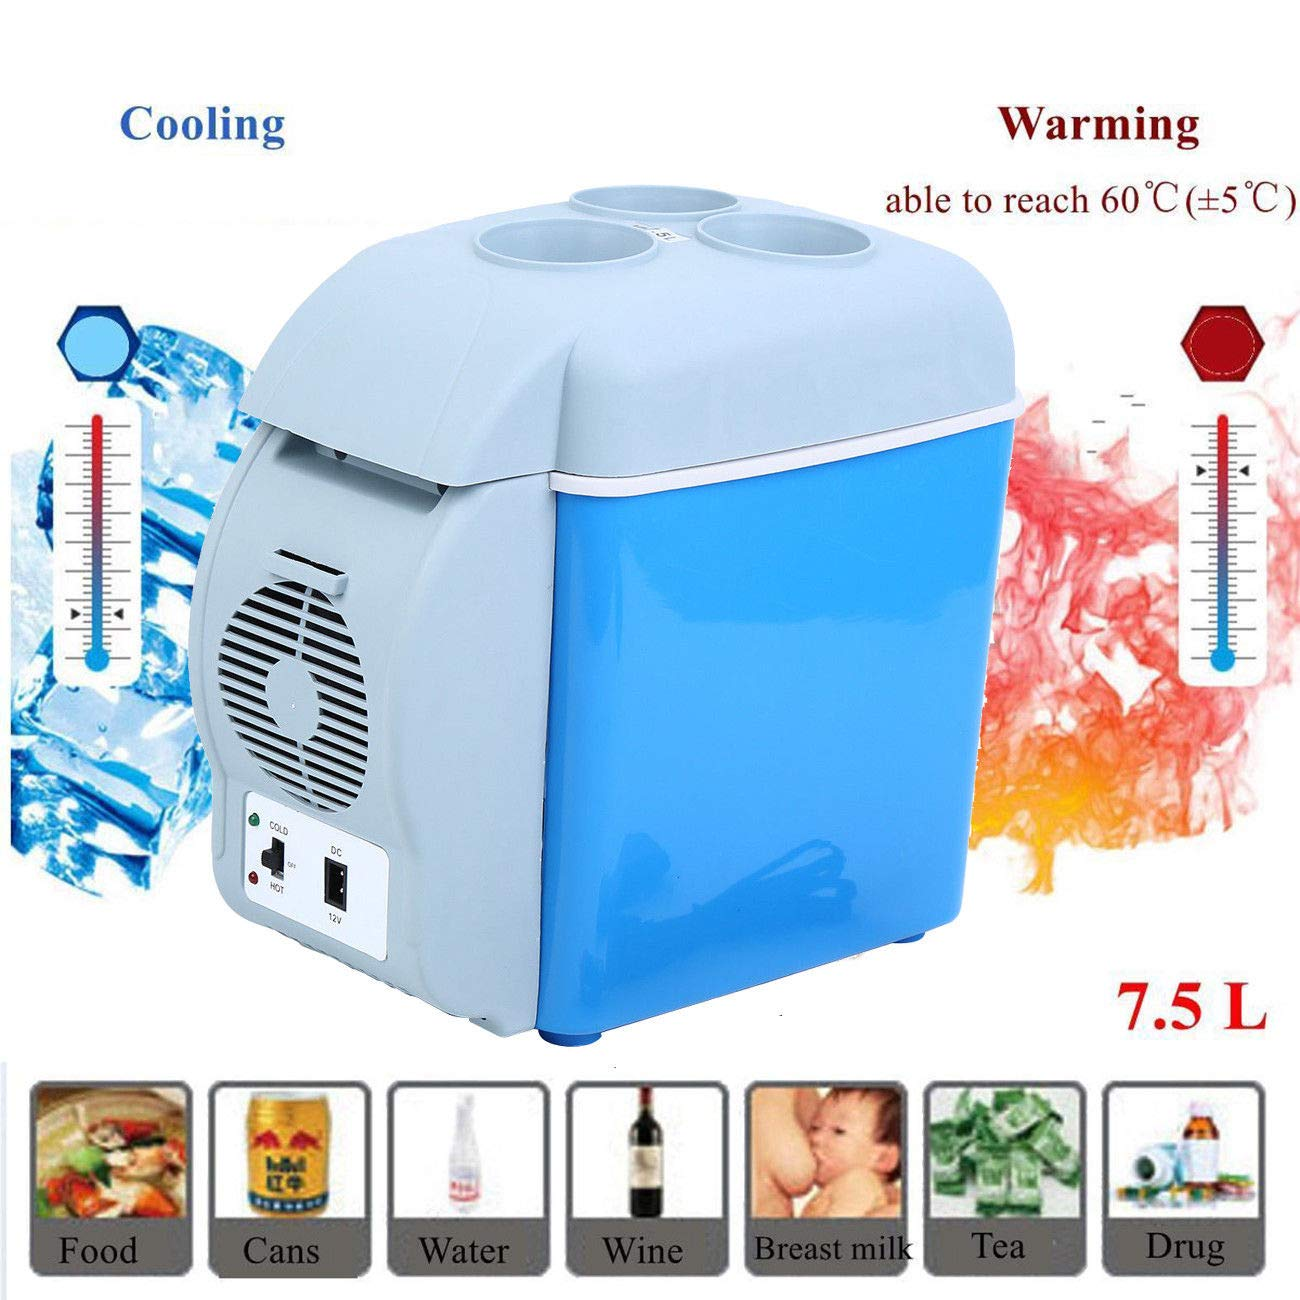 Taxi Drivers and Long-Distance Trucks Ridgeyard 7.5L Portable Mini Car Refrigerator DC 12V Fridge Electric Cooler and Warmer for Self-Driving Tour